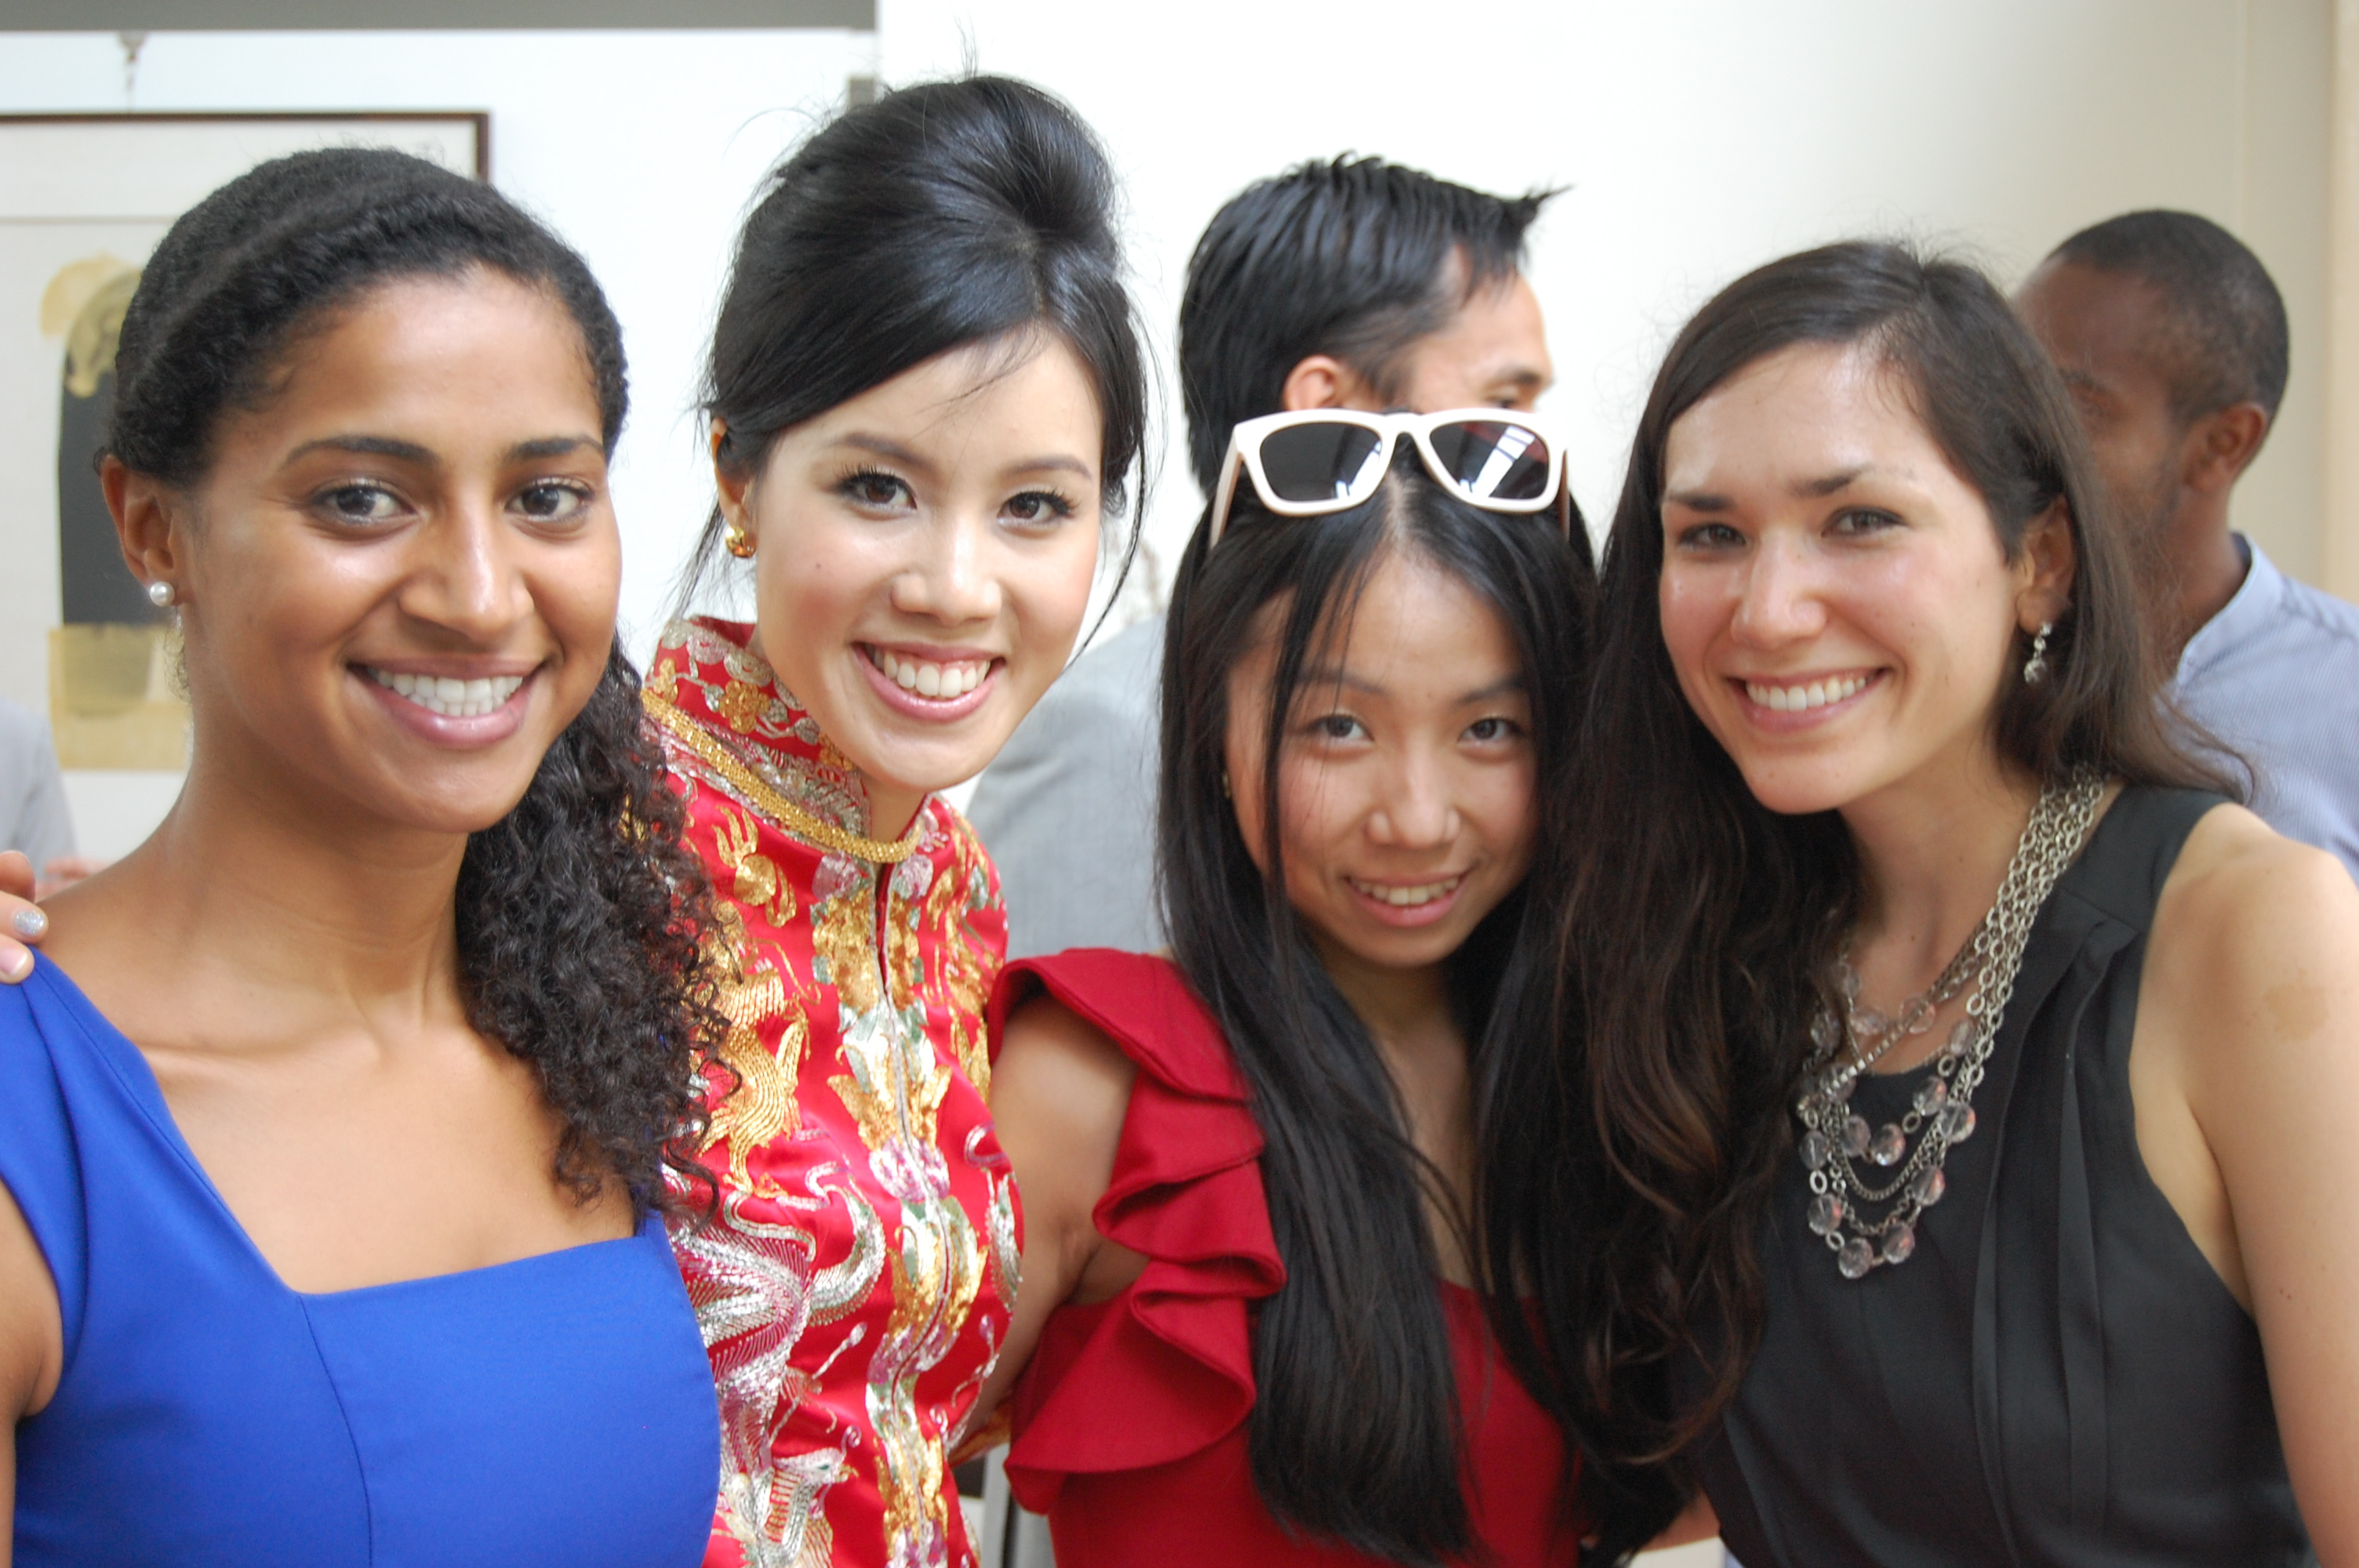 Lina and I this year, at the wedding of our friend Su (the blushing bride second from left!) in Singapore. Our other friend Luci is on the far left. I did not wear a bedbug-suspected outfit to this event.